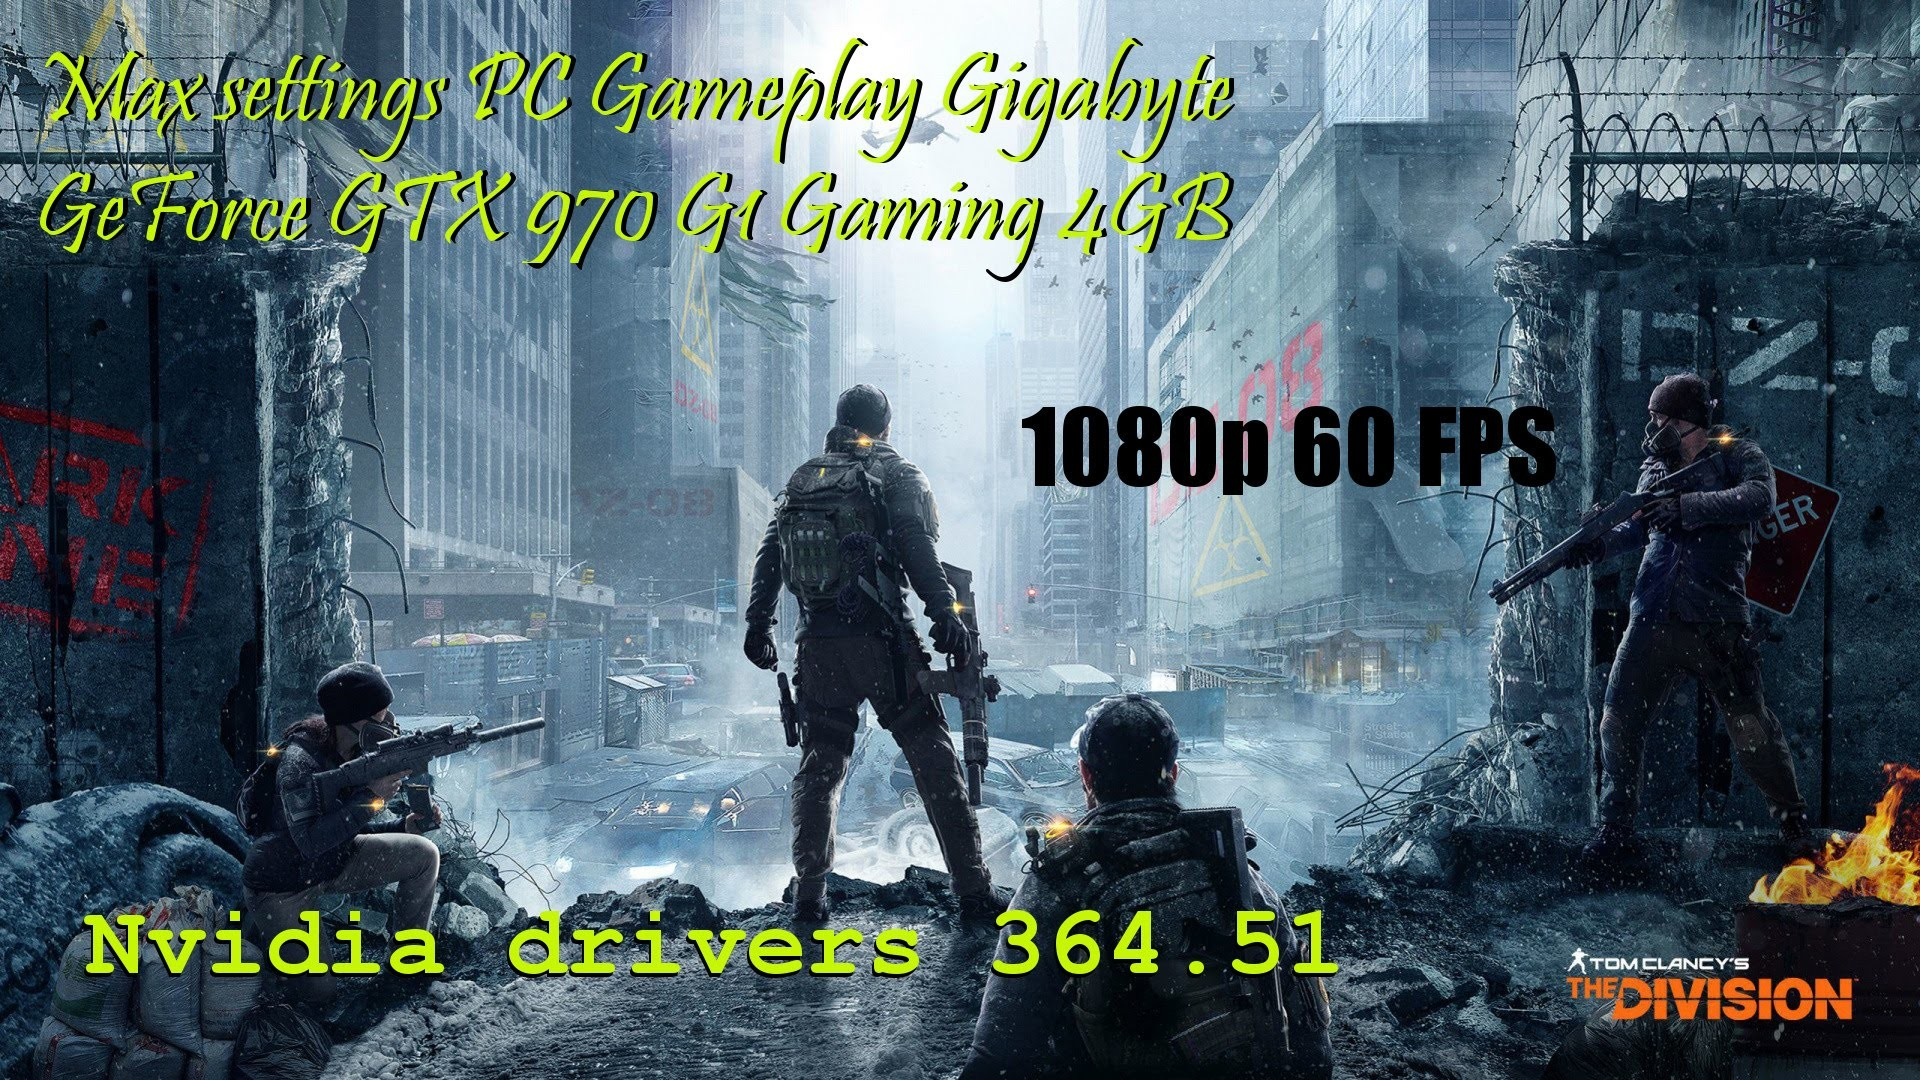 Tom Clancy's The Division Max settings PC Gameplay GTX 970